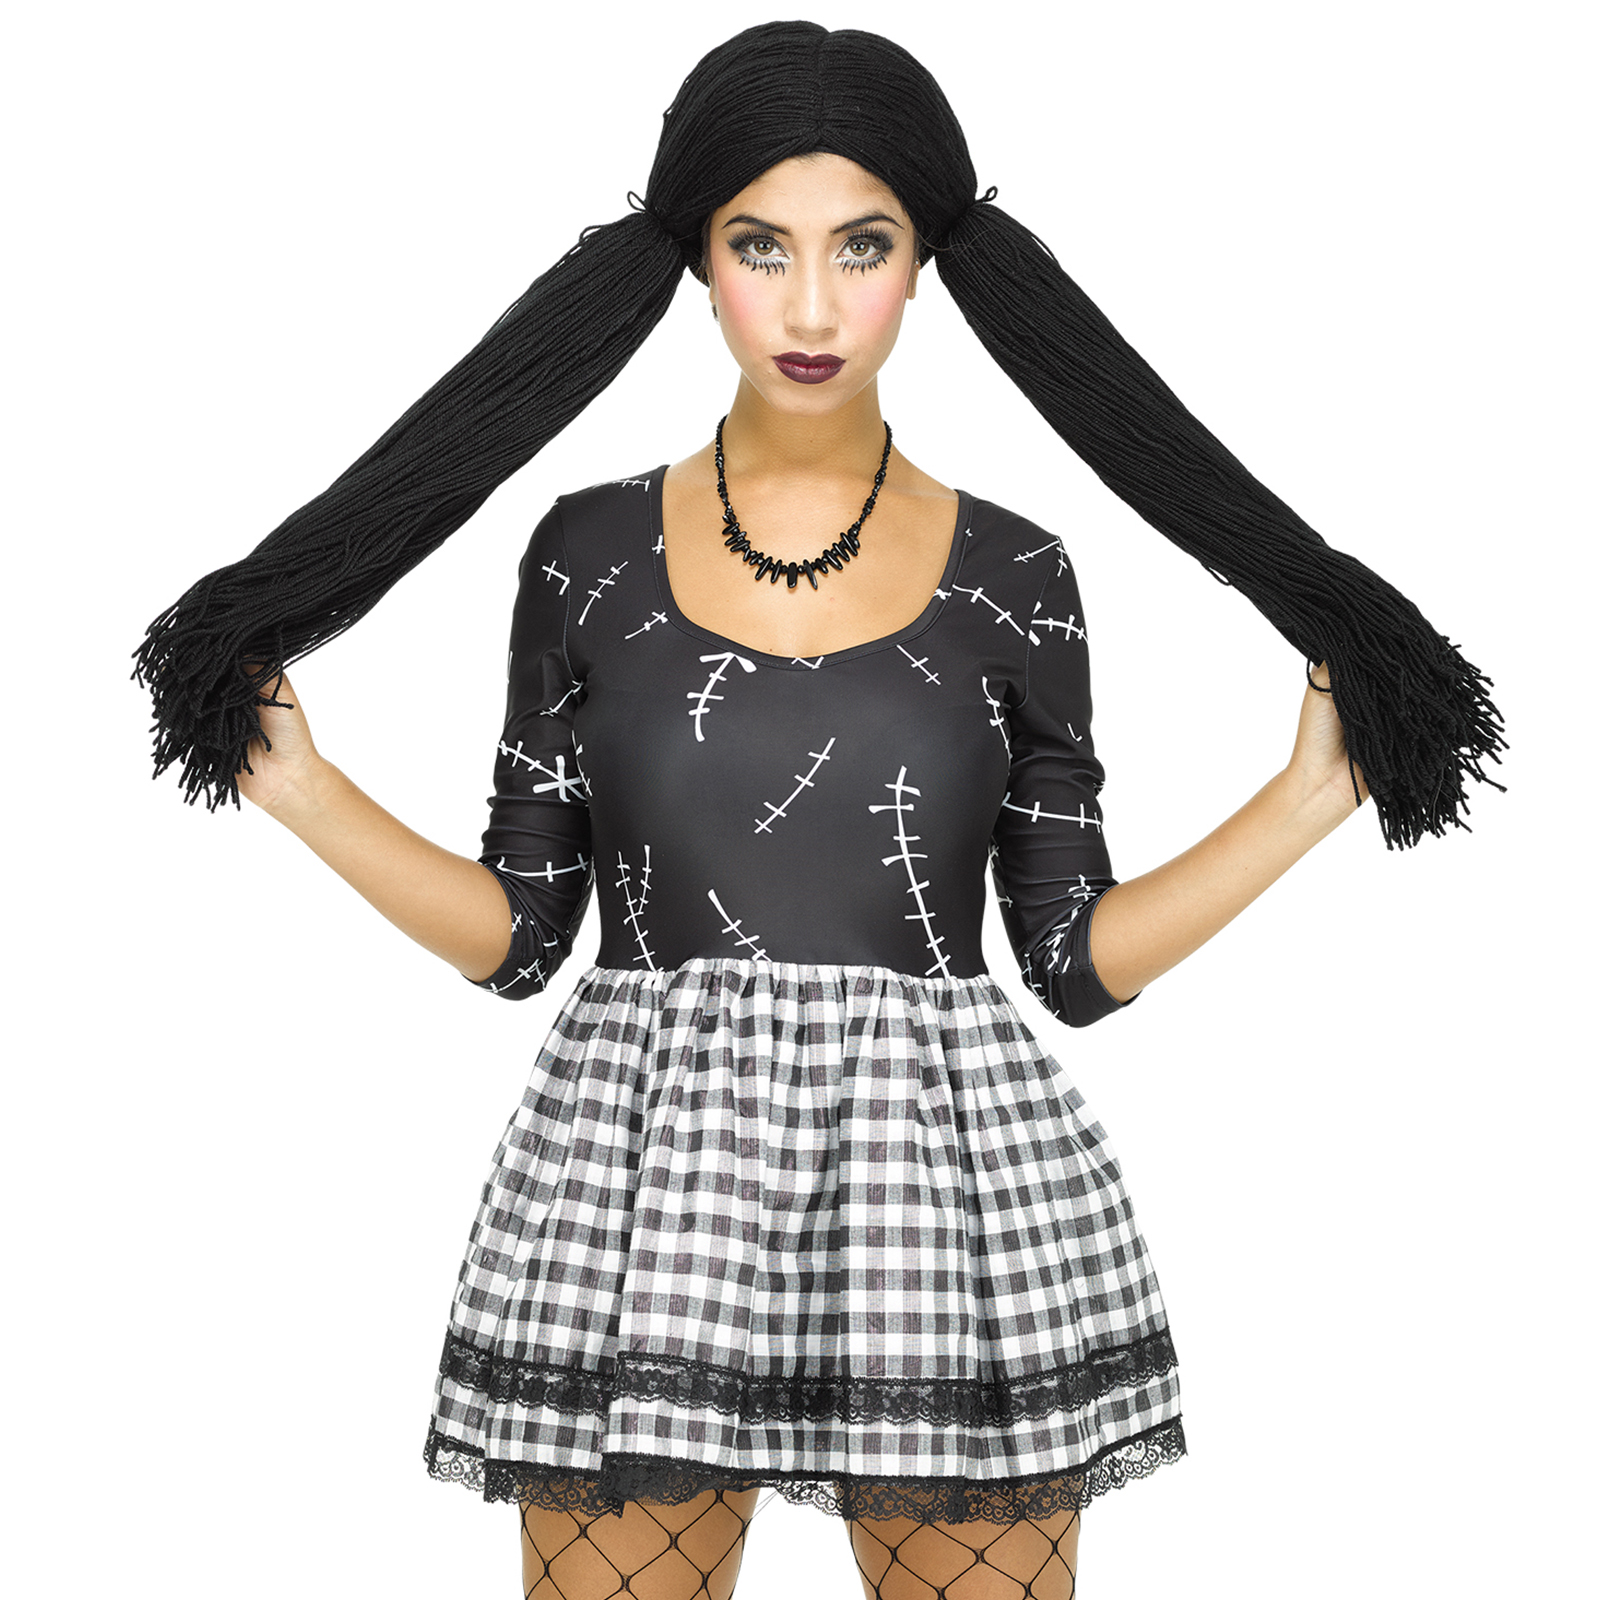 fasching horror zombie kost m damen halloween kleid karneval mottoparty ebay. Black Bedroom Furniture Sets. Home Design Ideas